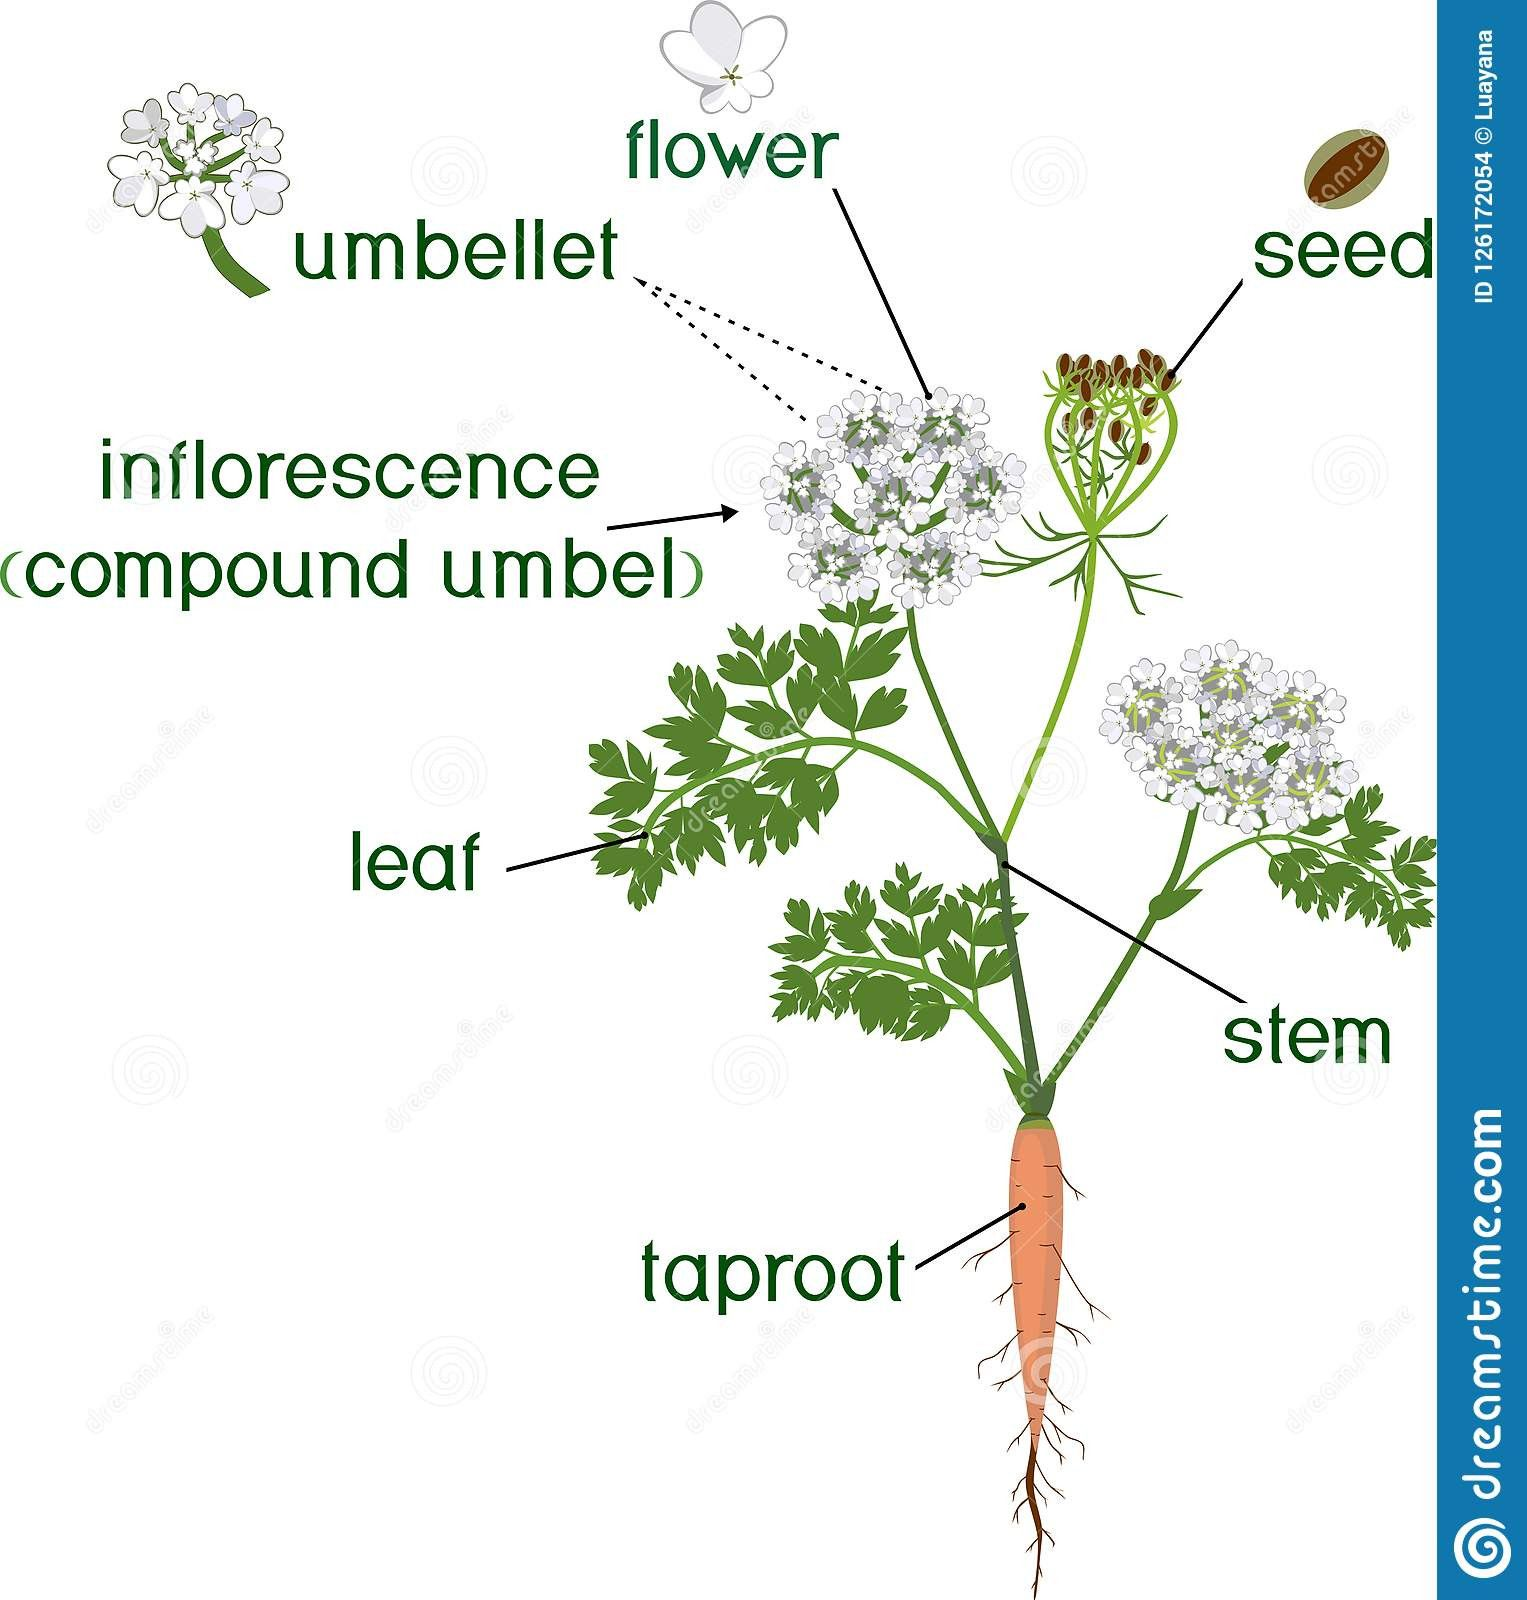 Parts Of A Carrot Plant Inspirational Taproot Stock Illustrations 191 Taproot Stock In 2020 How To Plant Carrots Plants Taproot